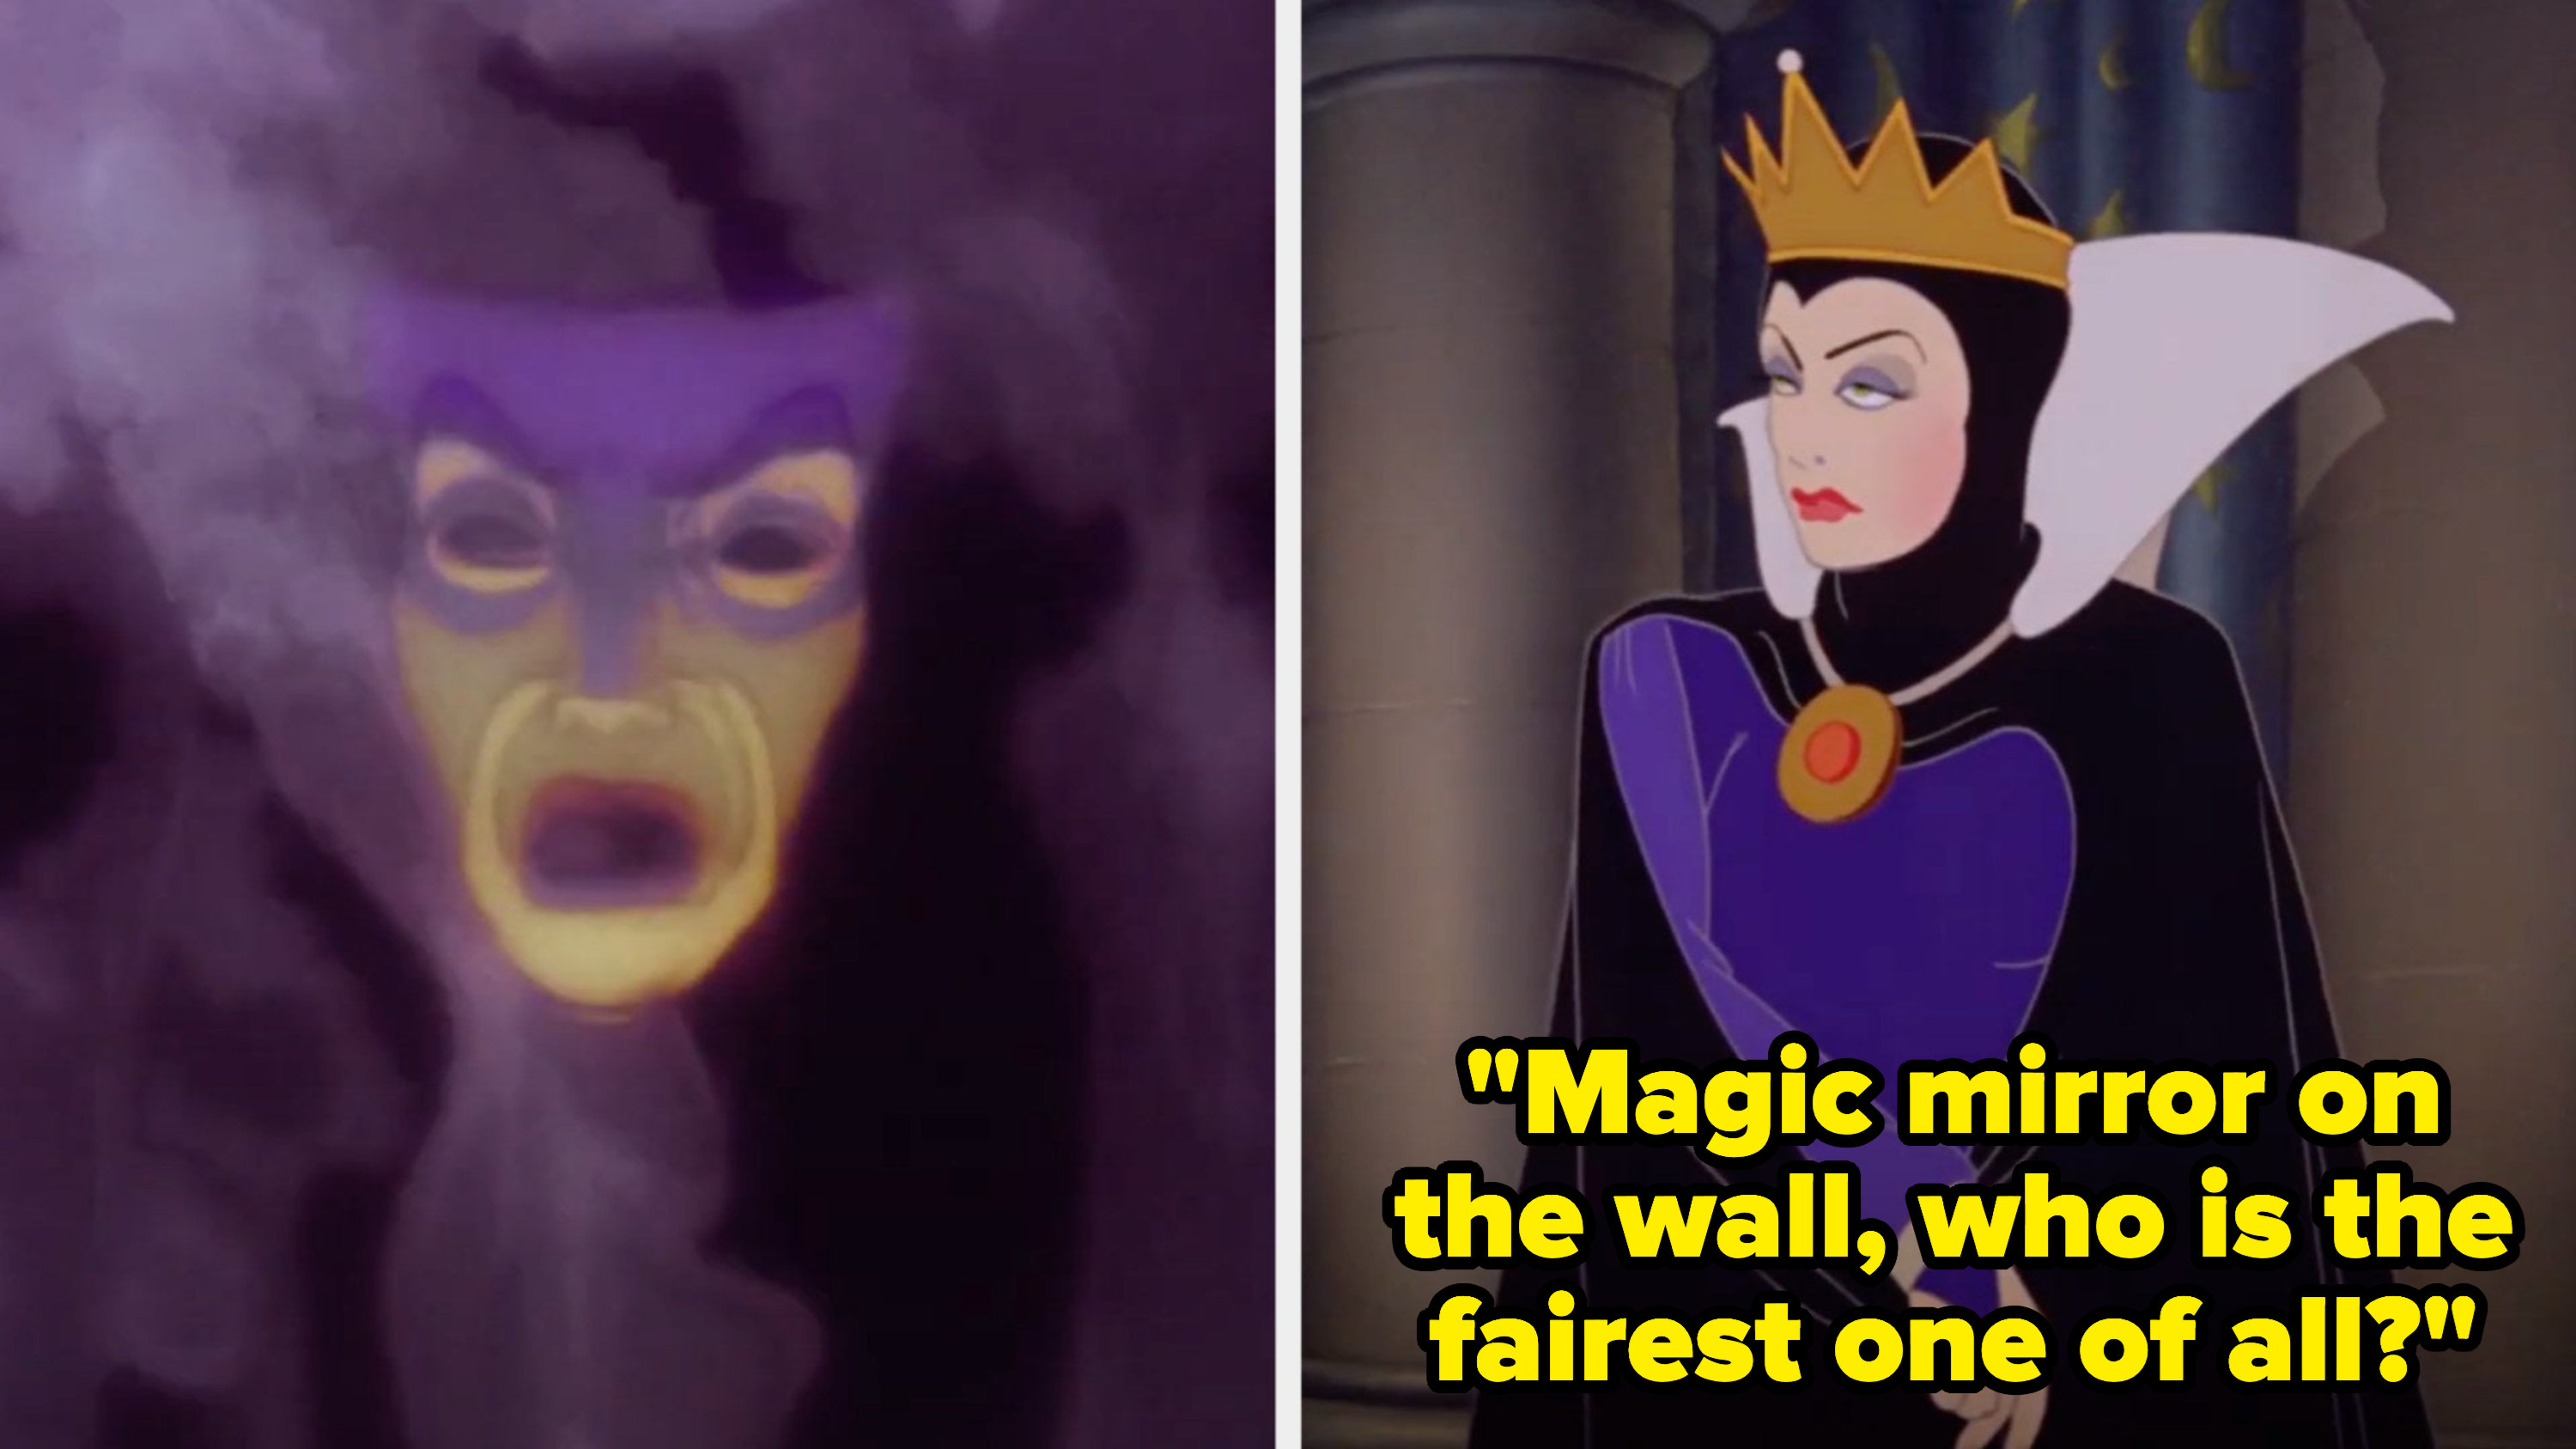 """The Evil Queen asking the Magic Mirror: """"Magic mirror on the wall, who is the fairest one of all?"""""""